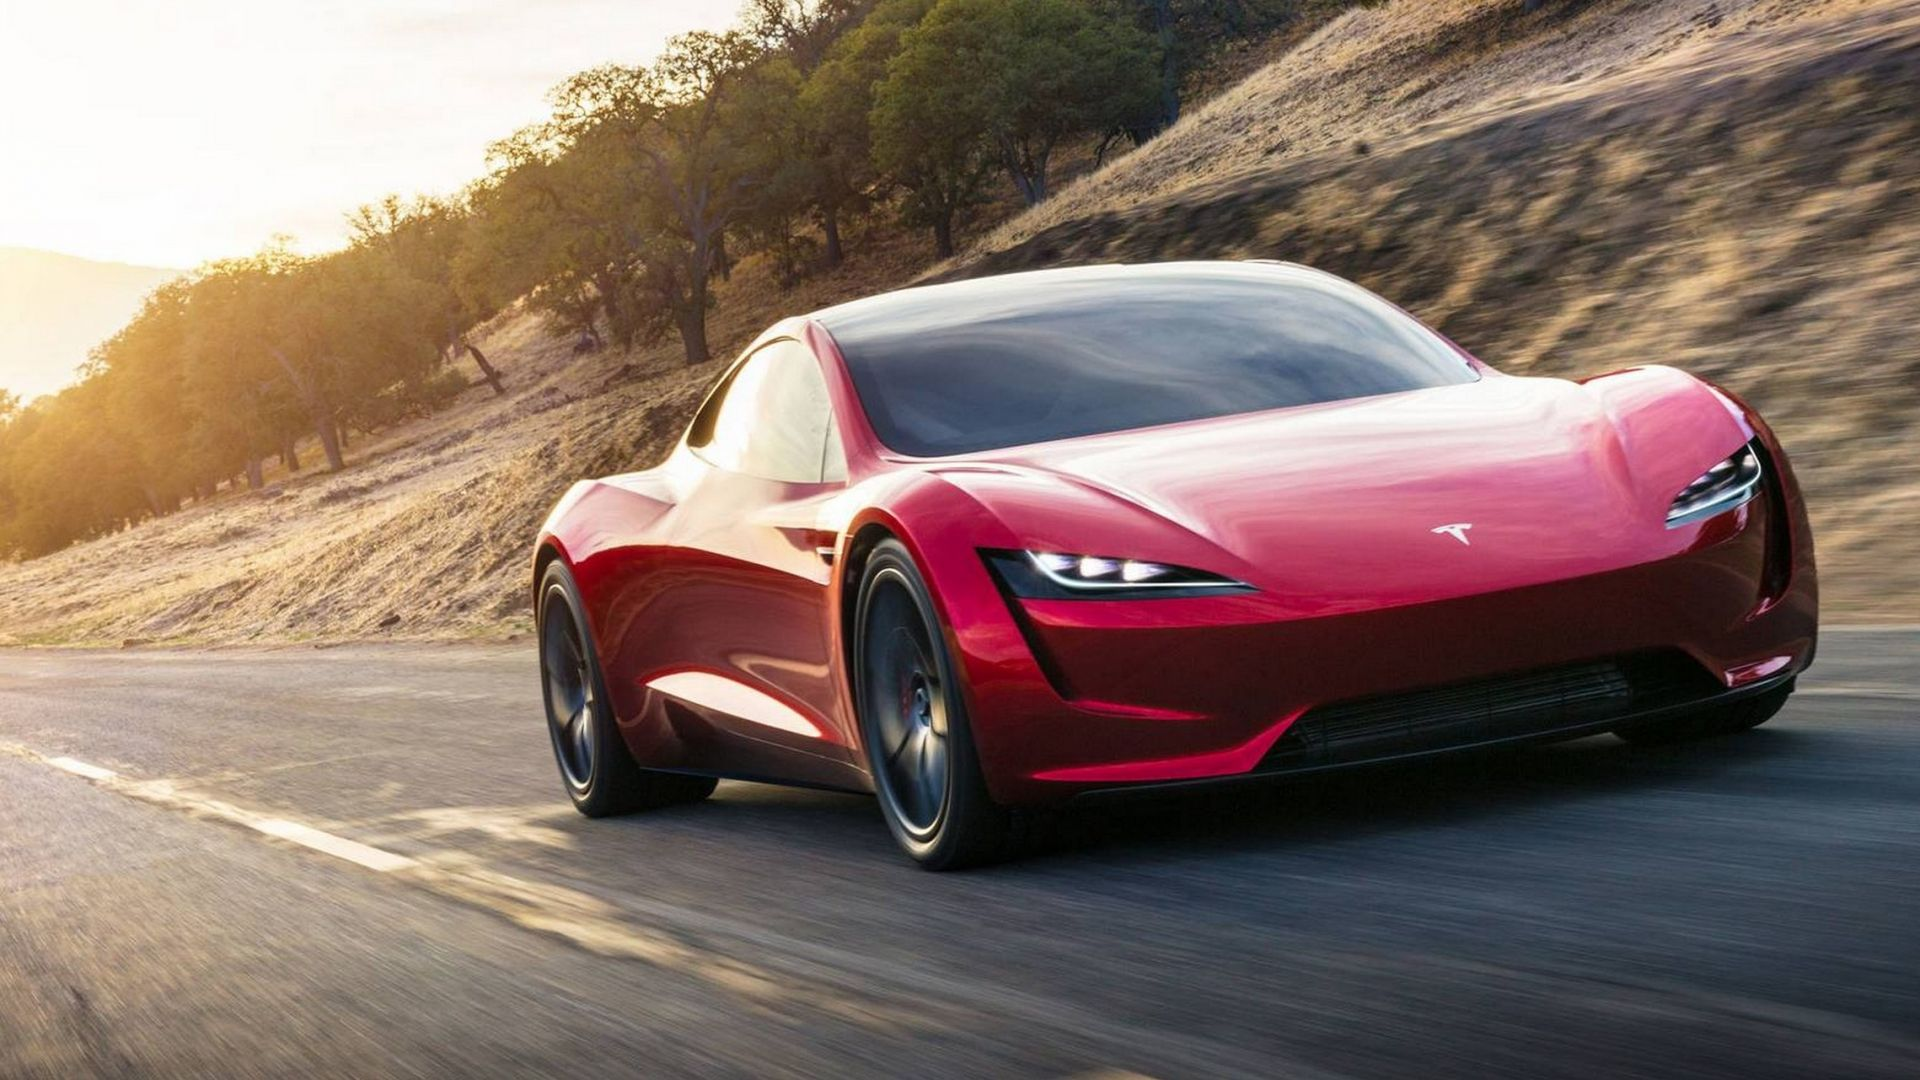 Tesla Roadster K X as well Abarth Rivale Shines Brighter Than Fiat Collezione In Geneva besides Aston Martin Rapide E together with Executive Ruecksitze Tesla Model S besides Bmw F X Gets Wrapped In Electric Lime Vinyl In Russia Photo Gallery. on tesla roadster